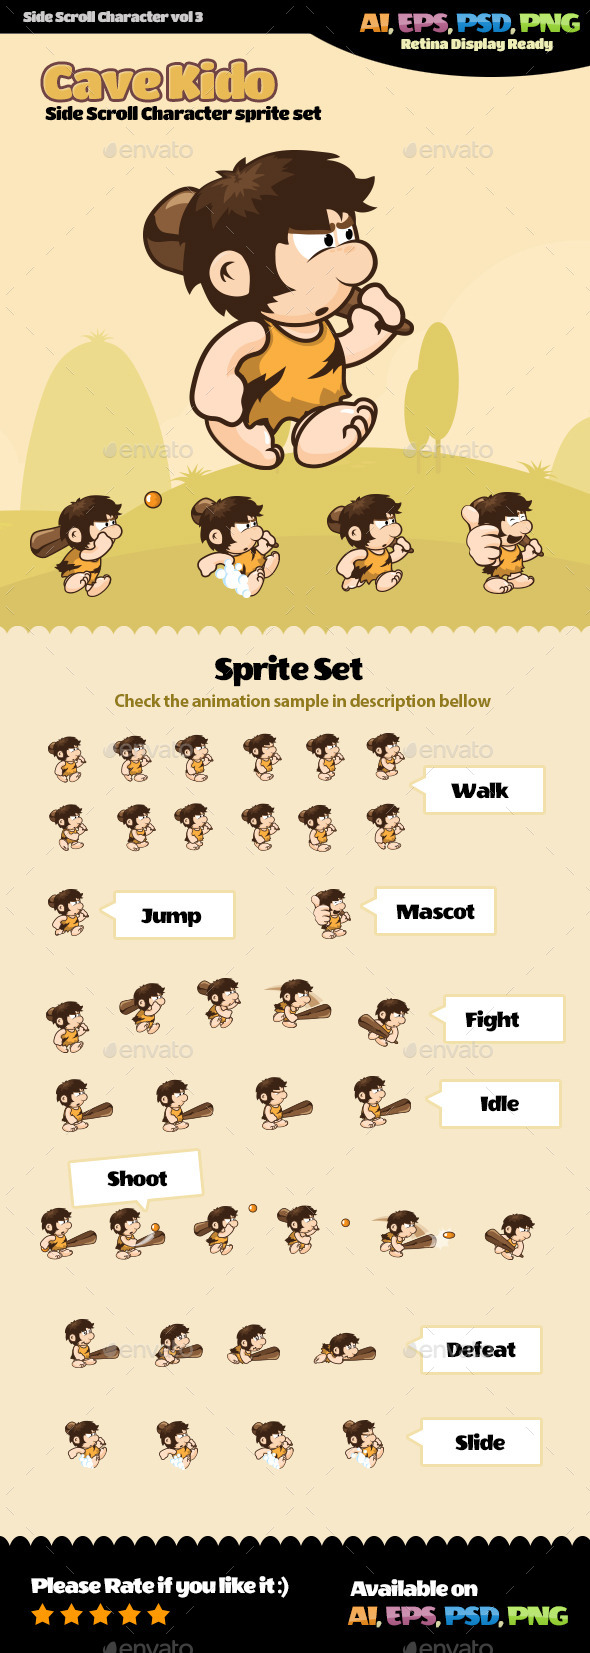 Side Scroll Character Vol 03